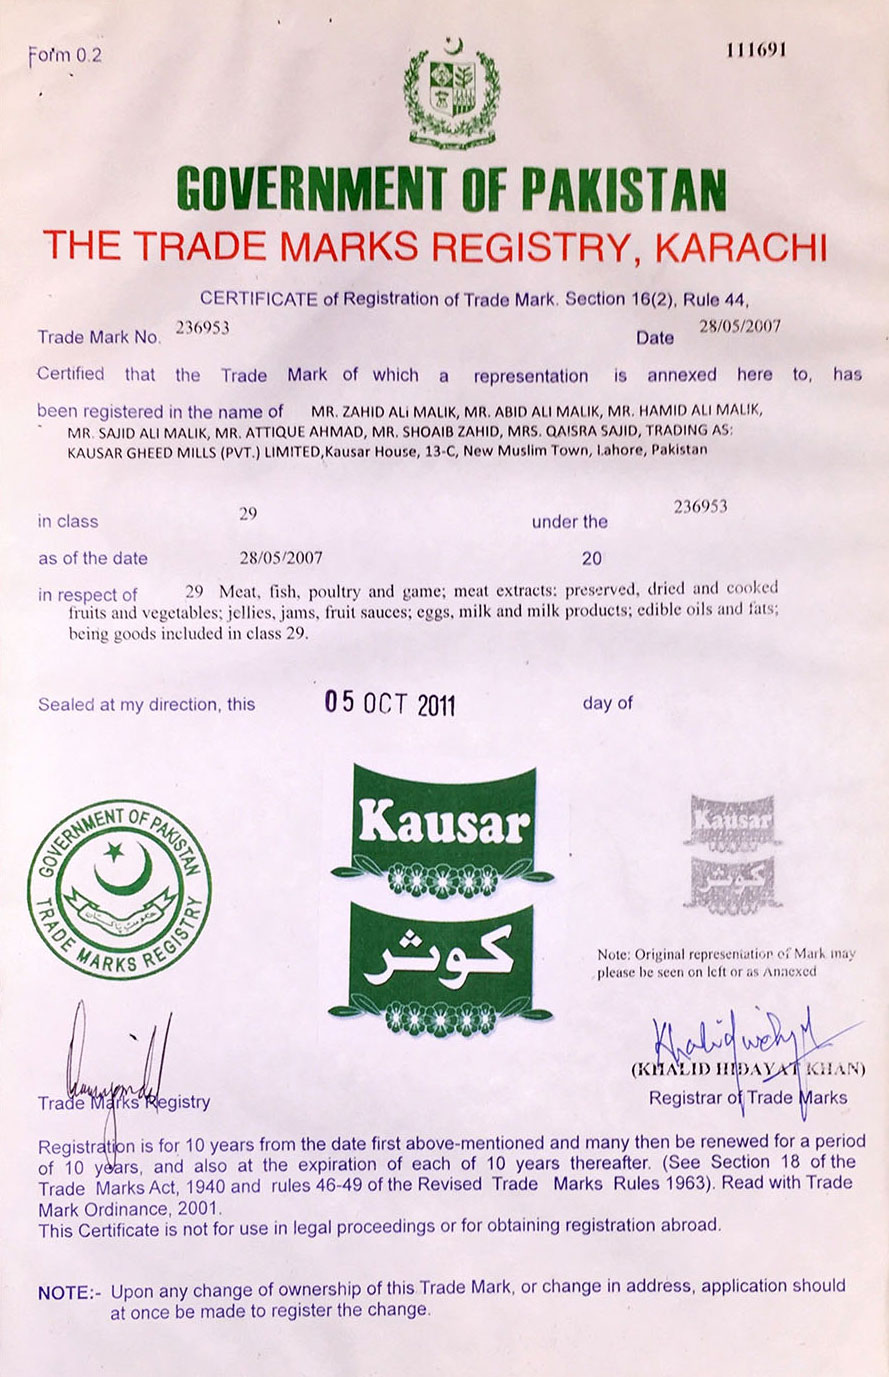 Kausar is a registered trade mark in class 29 in Pakistan.